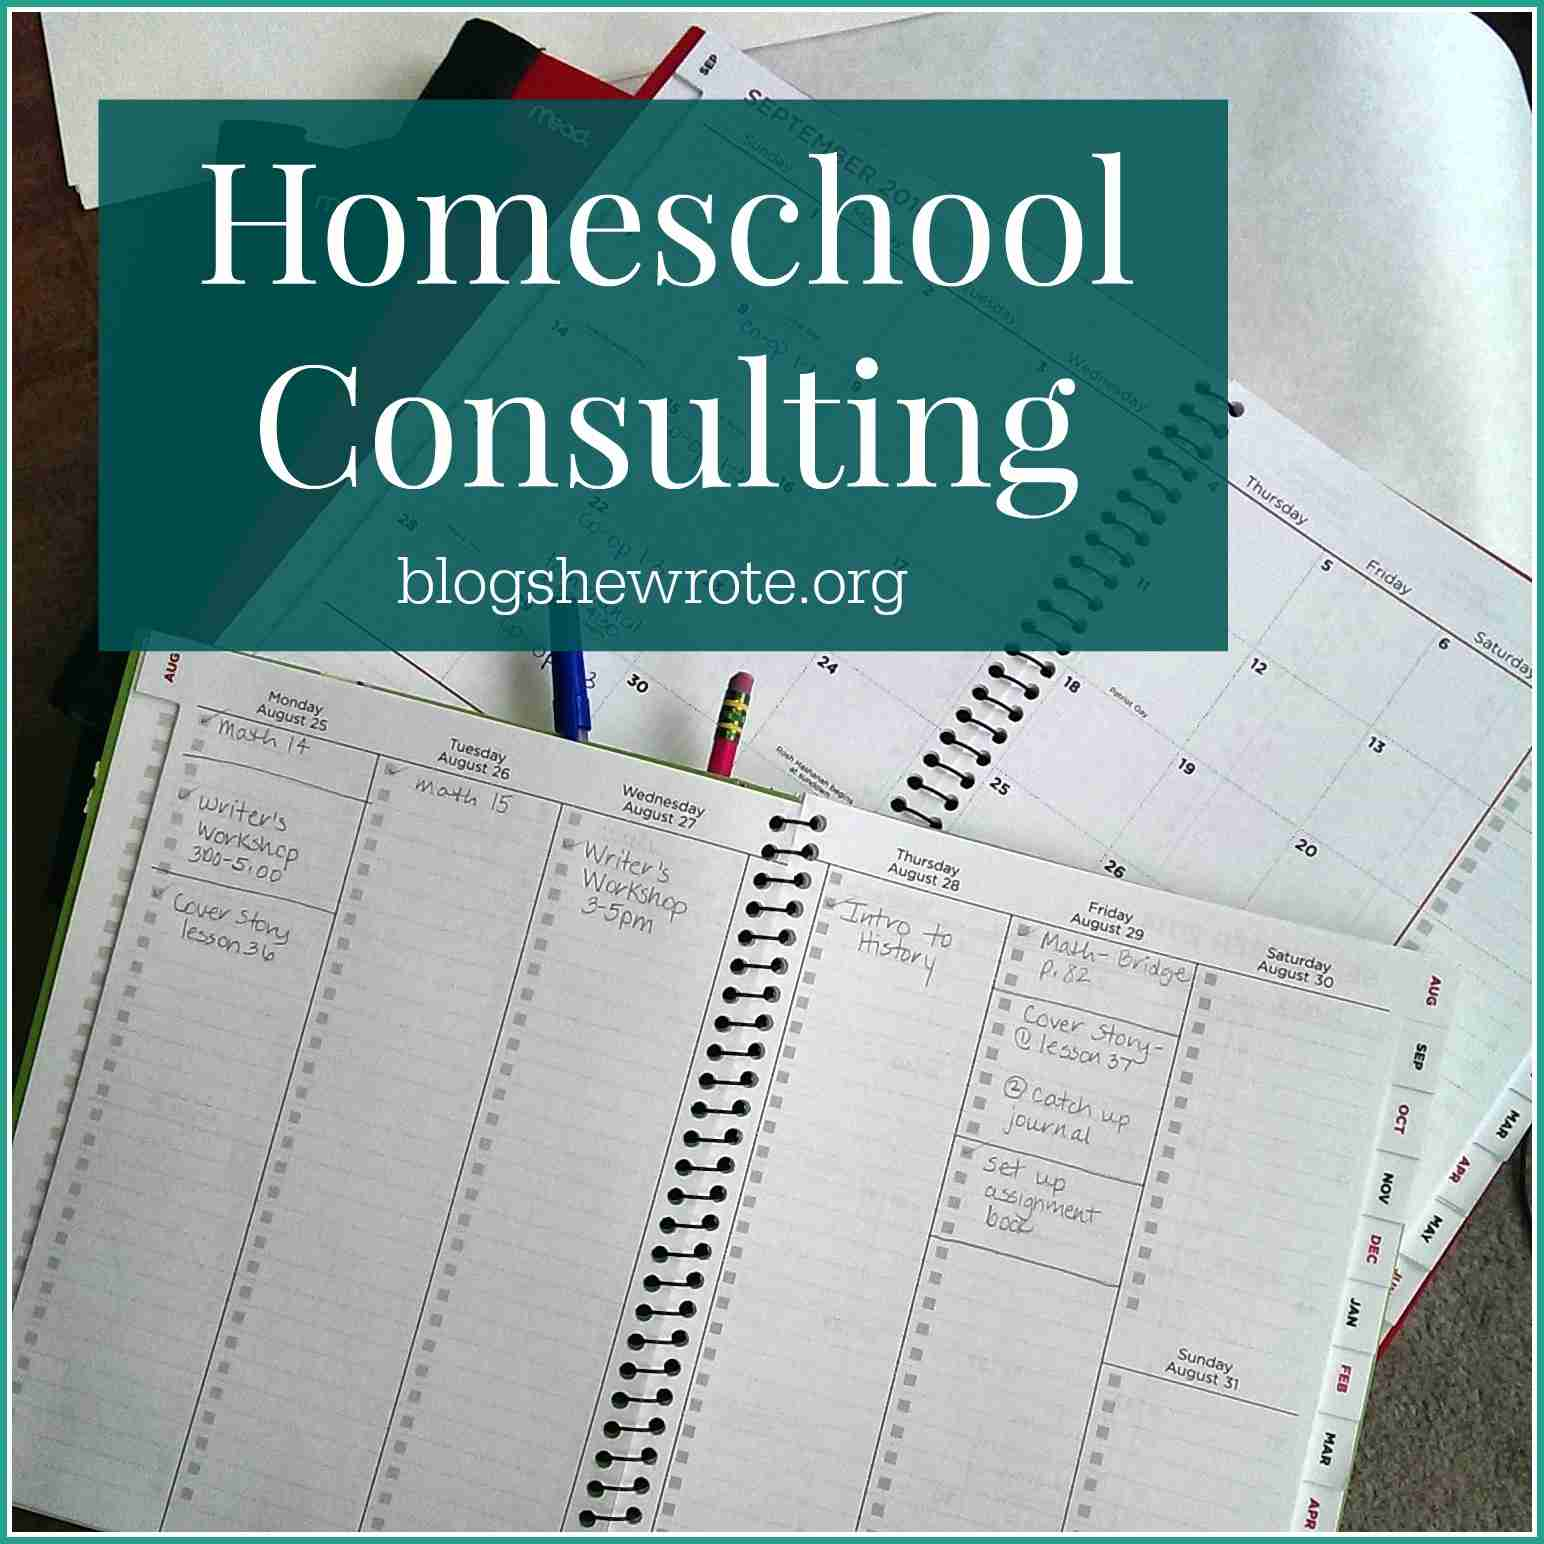 Blog, She Wrote: Homeschool Consulting